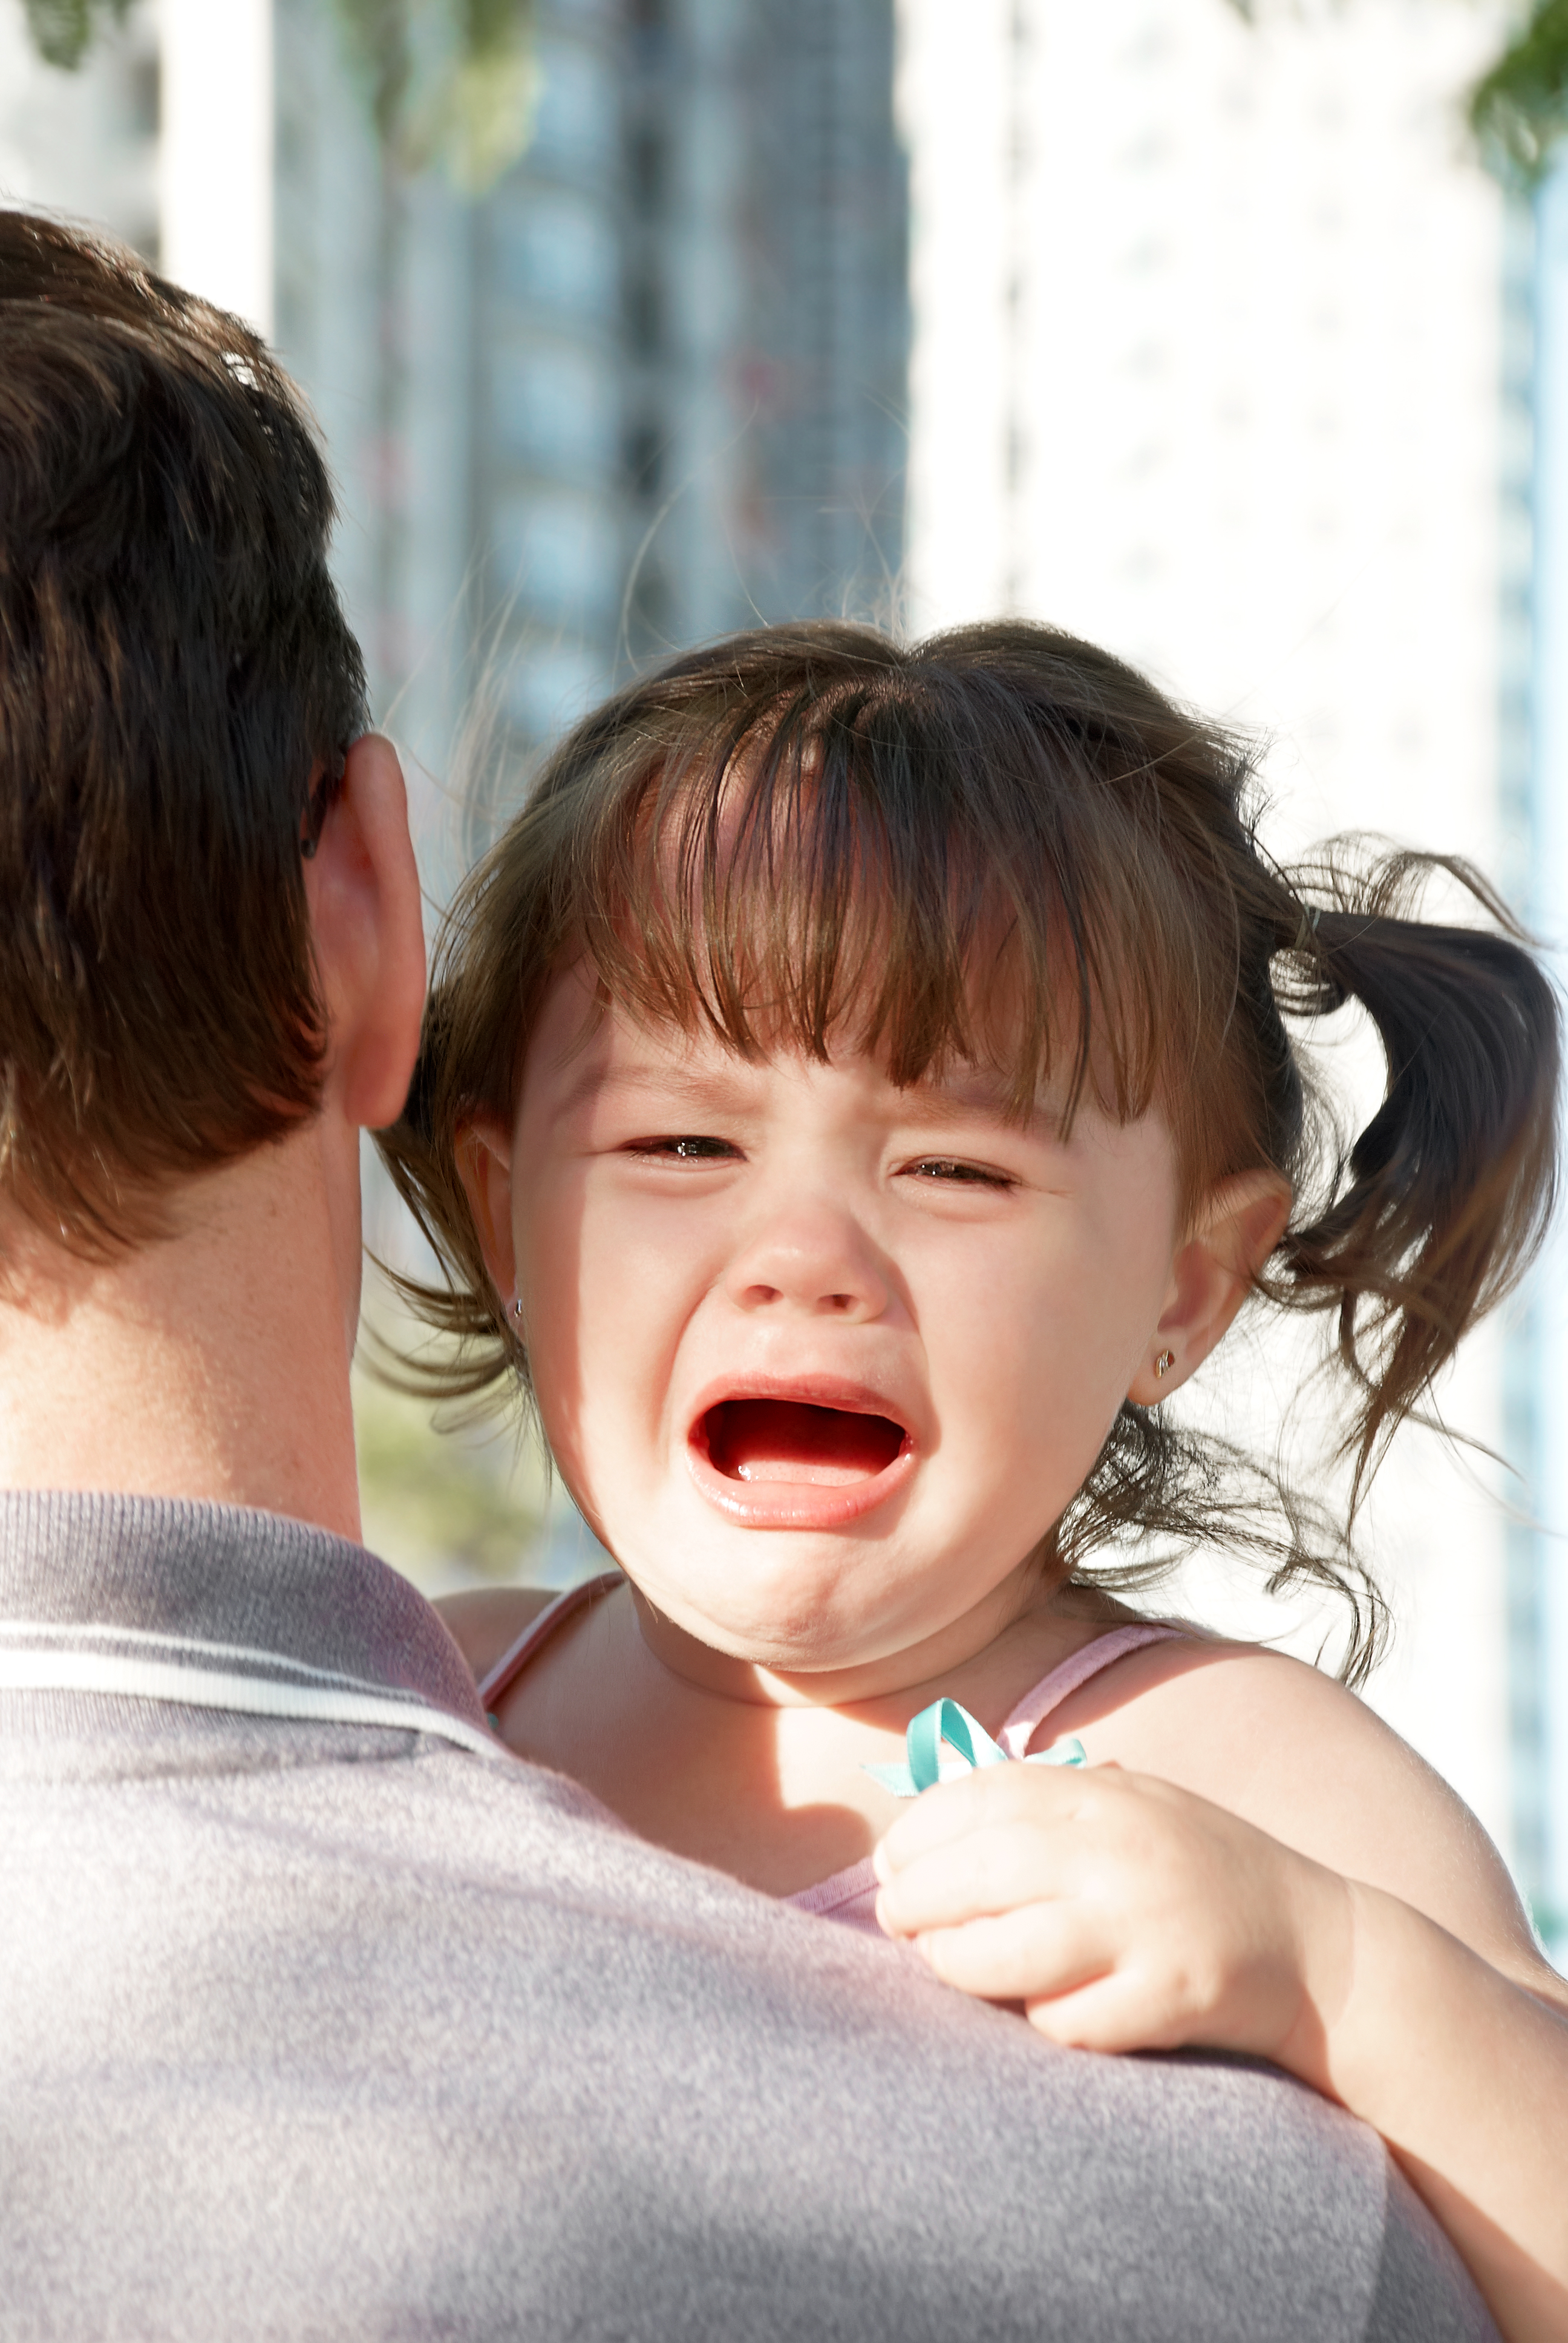 10 Better Ways To Deal With Your Toddlers Tantrums